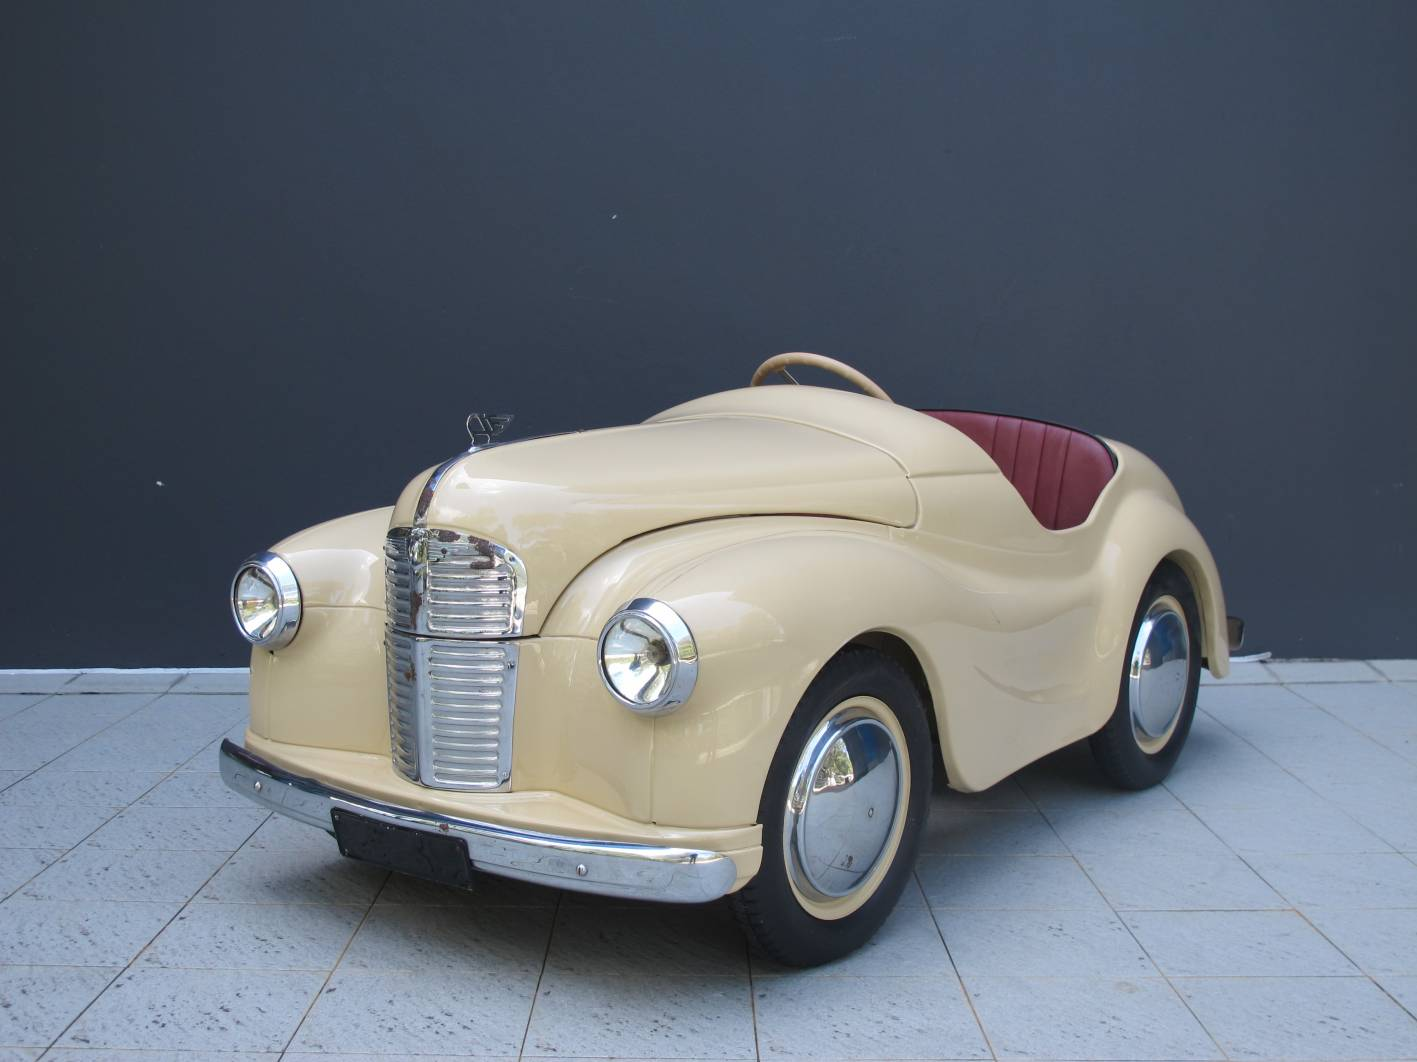 This child's 1950s pedal car sold for $9300 at auction.